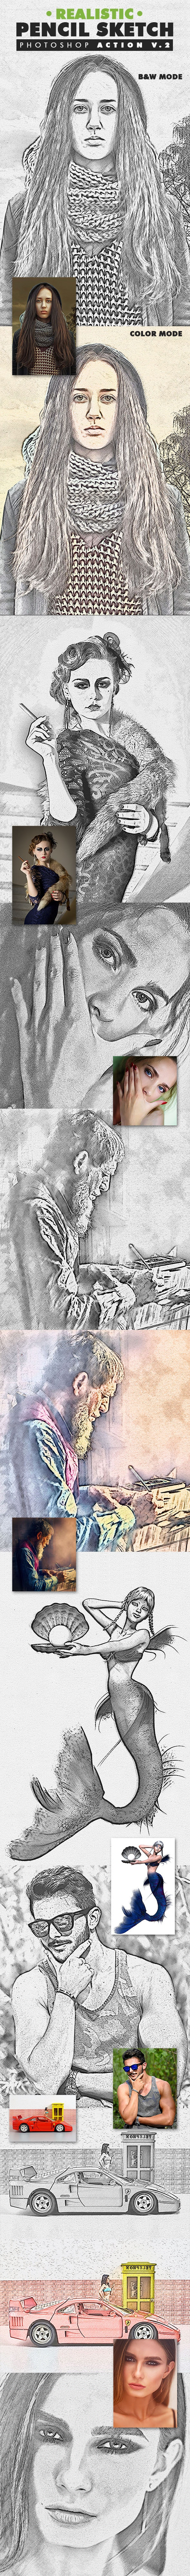 Realistic Pencil Sketch Photoshop Action Vol.2 - Photo Effects Actions